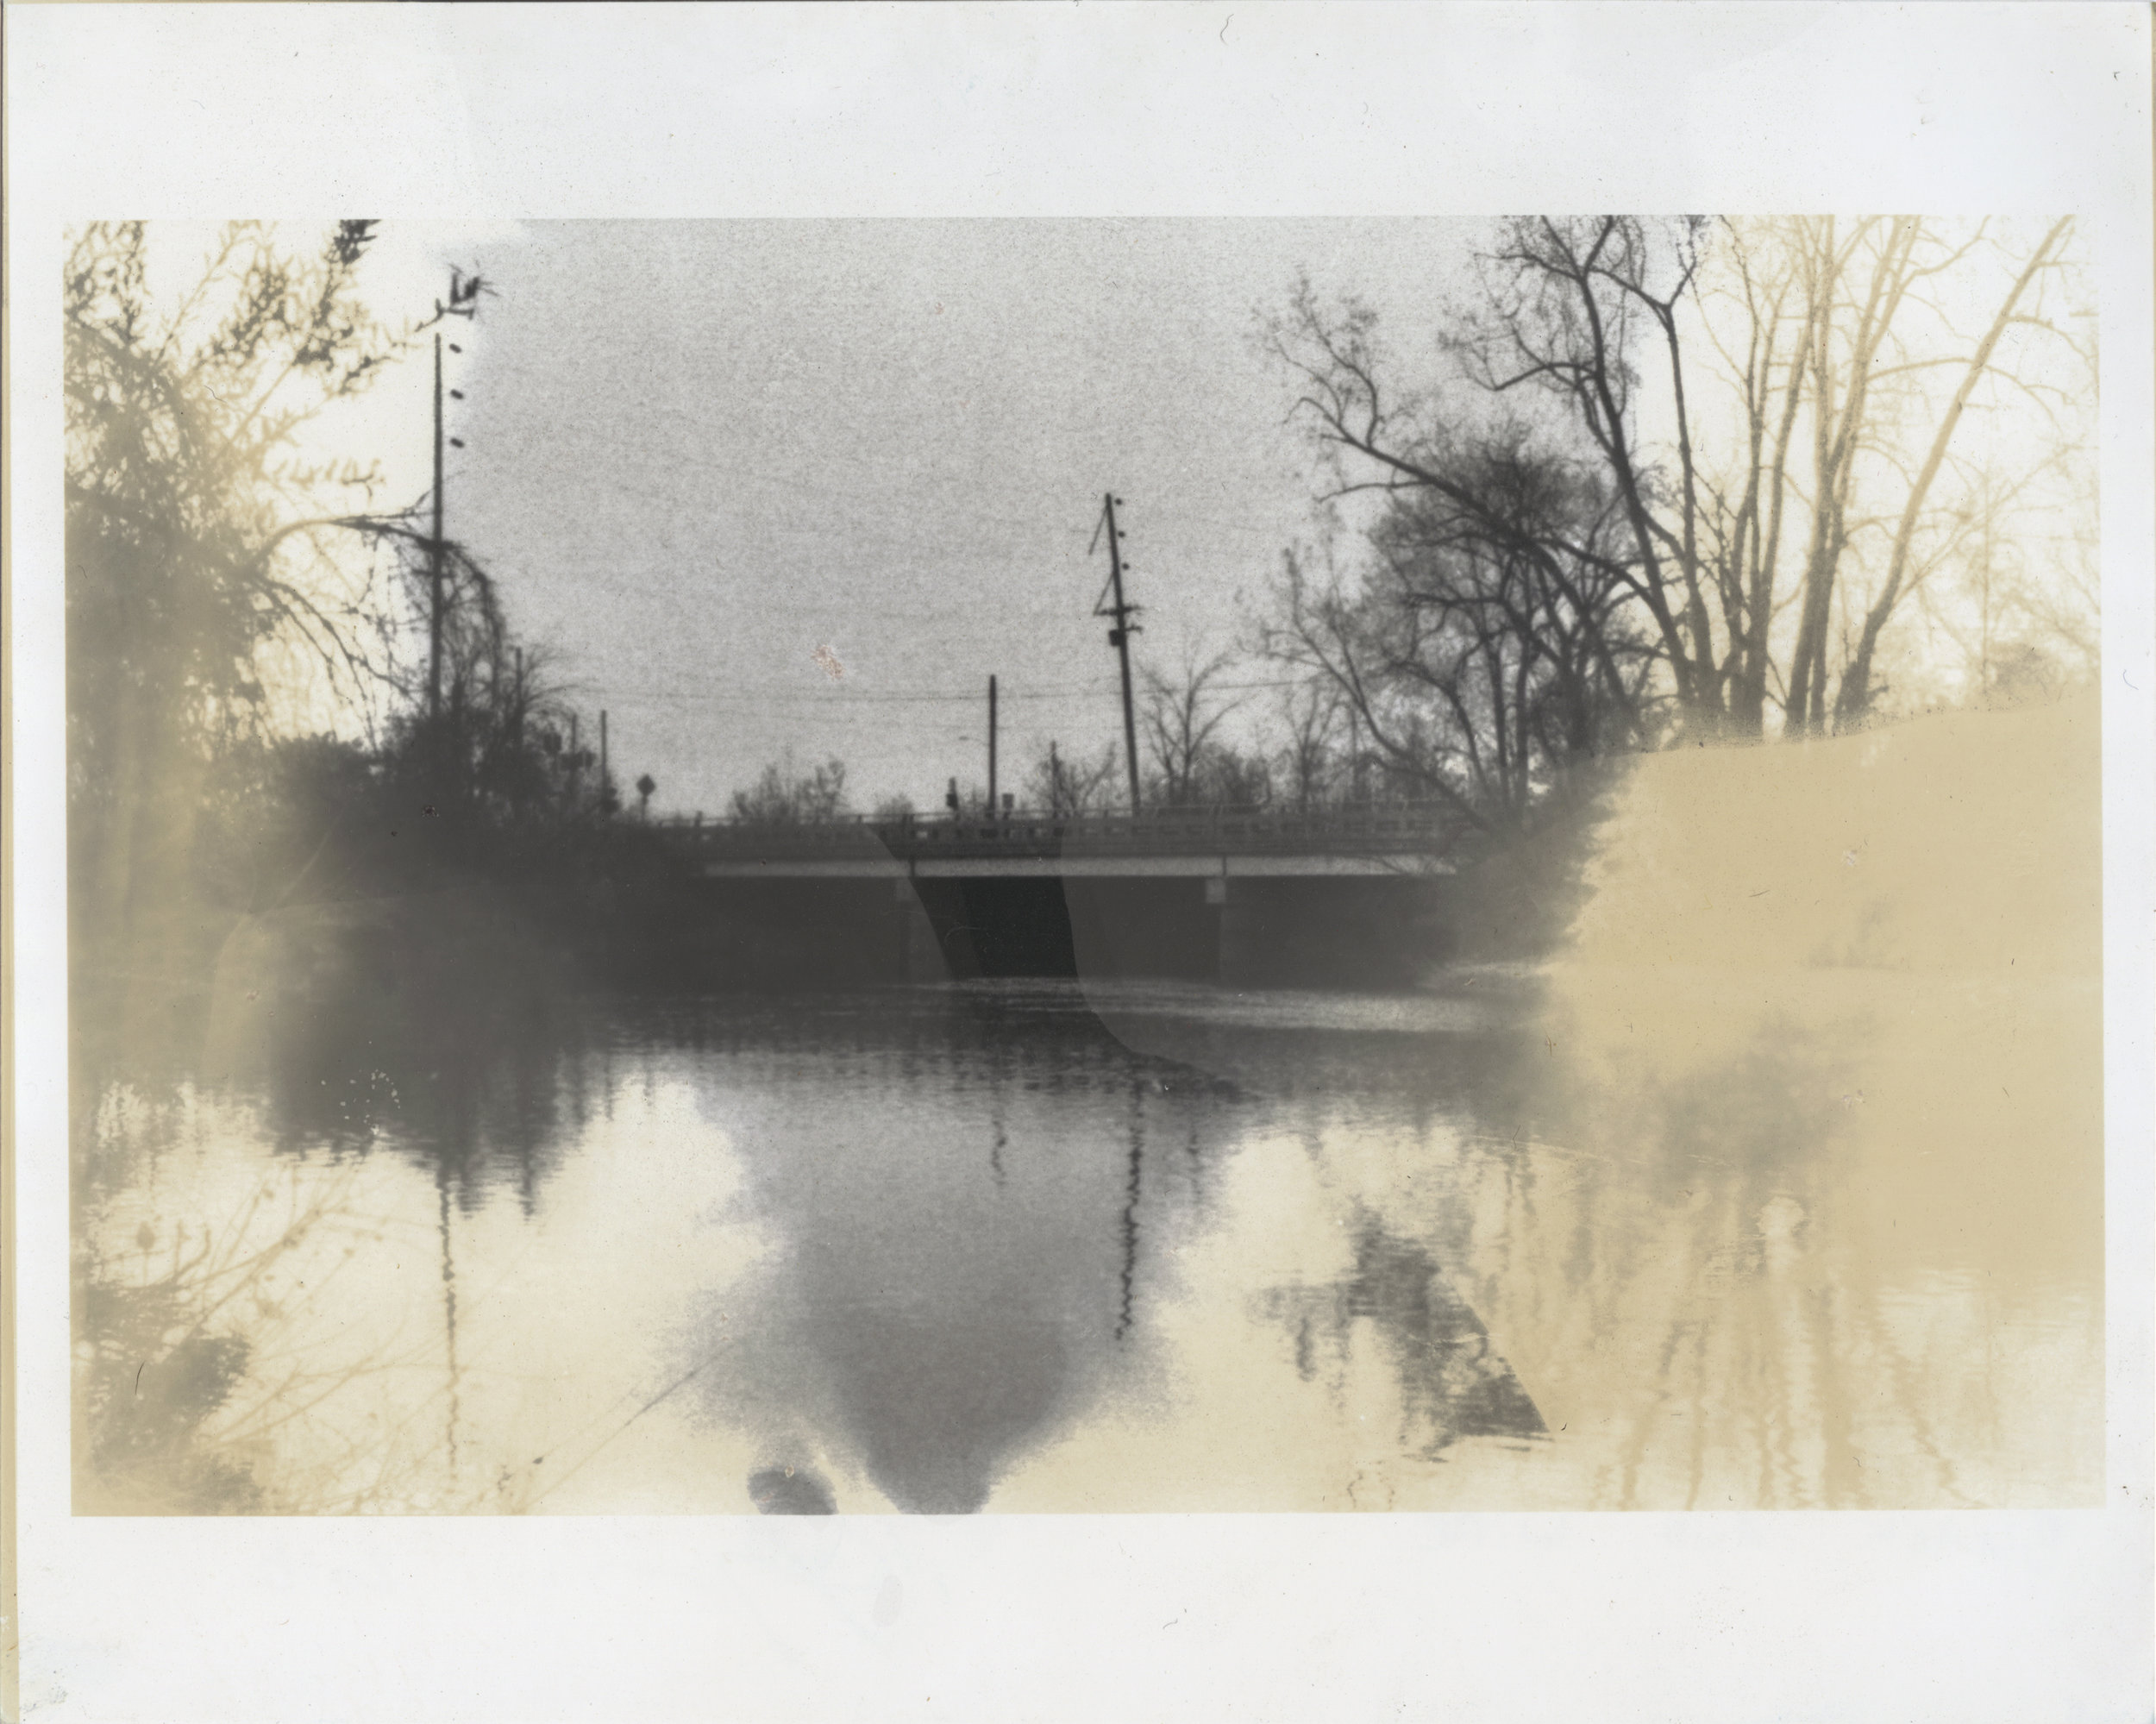 Bridge Over Flint 10  2016  silver gelatin print developed with Flint, Michigan tap water,  vitamin C, bleach, and wine  8 x 10 inches